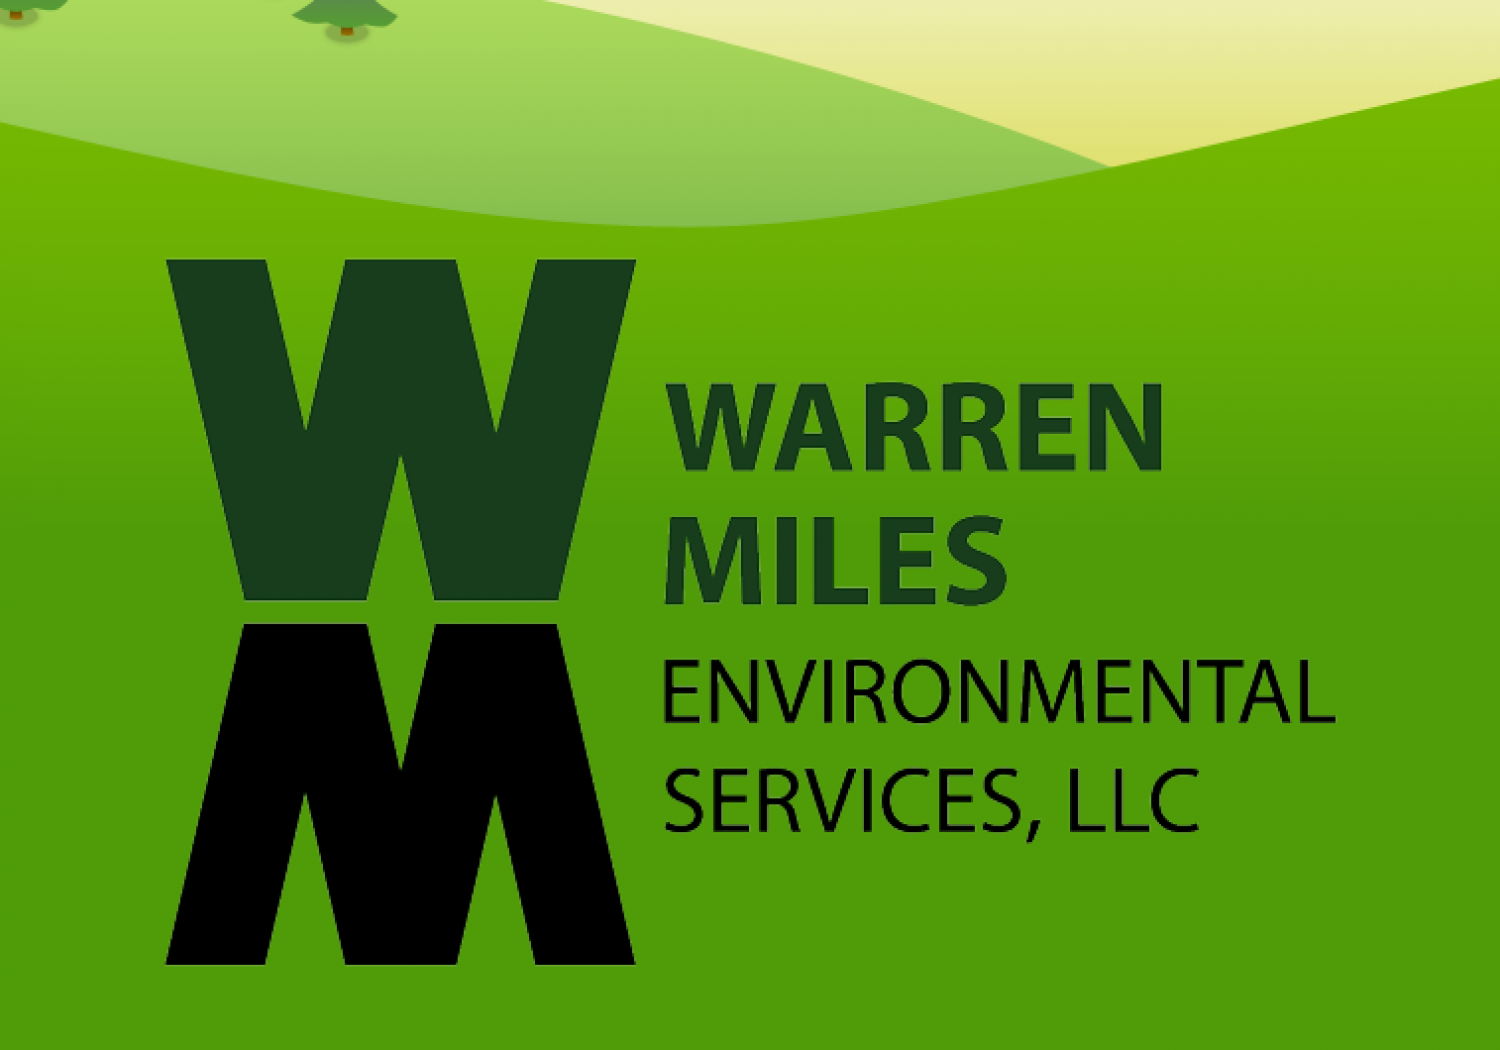 Warren Miles Environmental Services